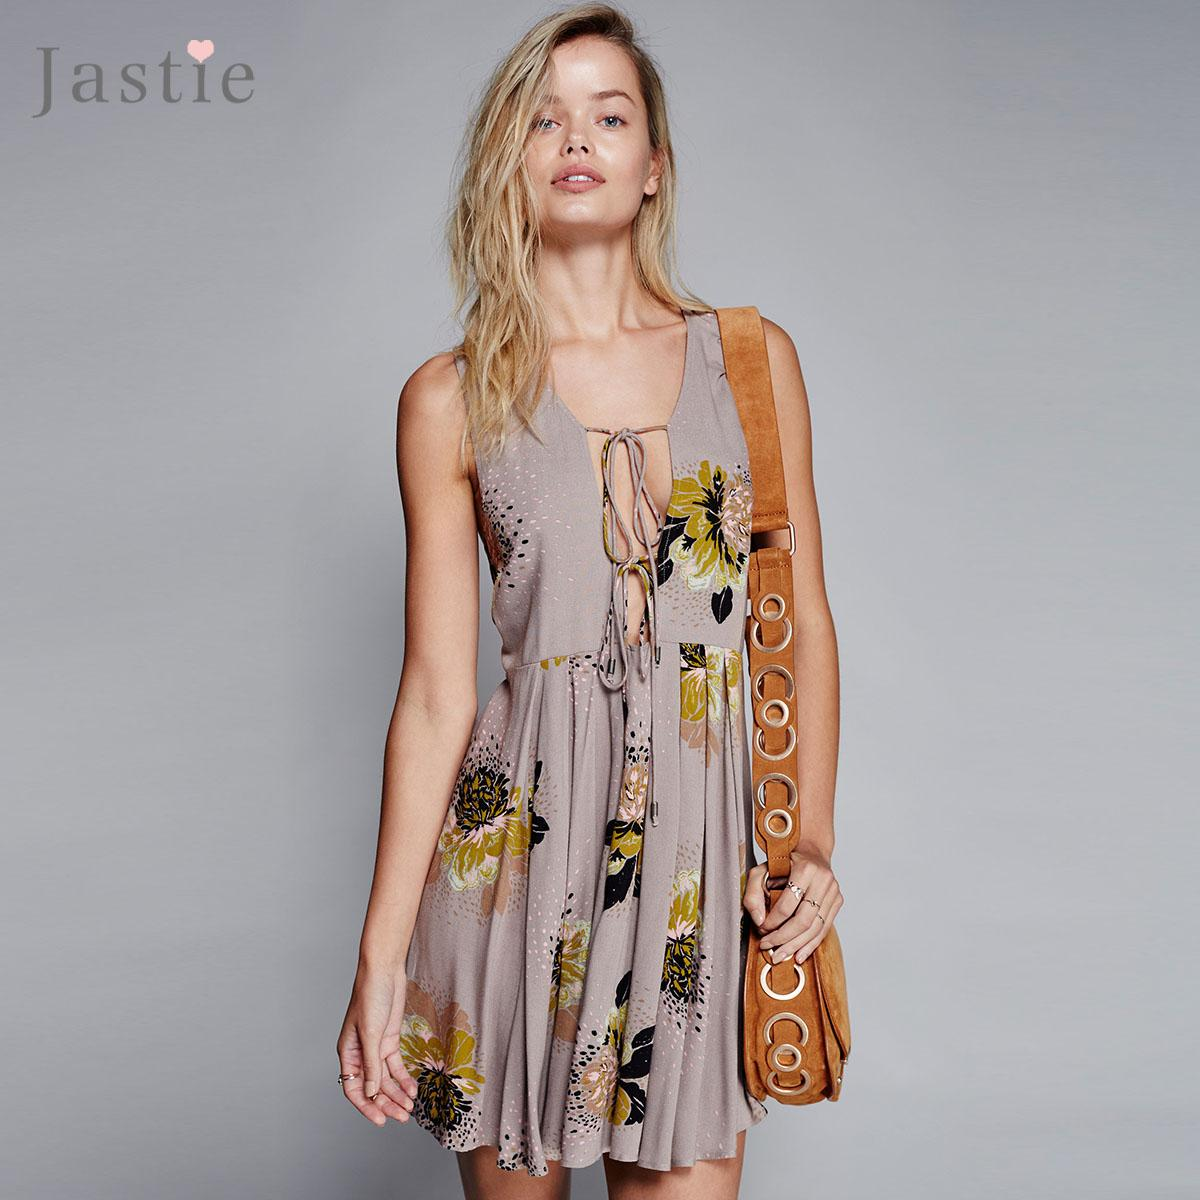 9a749450cc8f 2019 Wholesale Jastie Loveliest Day Tunic Mini Dress Flowy Plunging V Neck  Low Open Back Sexy Women Dresses Printed Sleeveless Boho Vestidos From  Cacy, ...